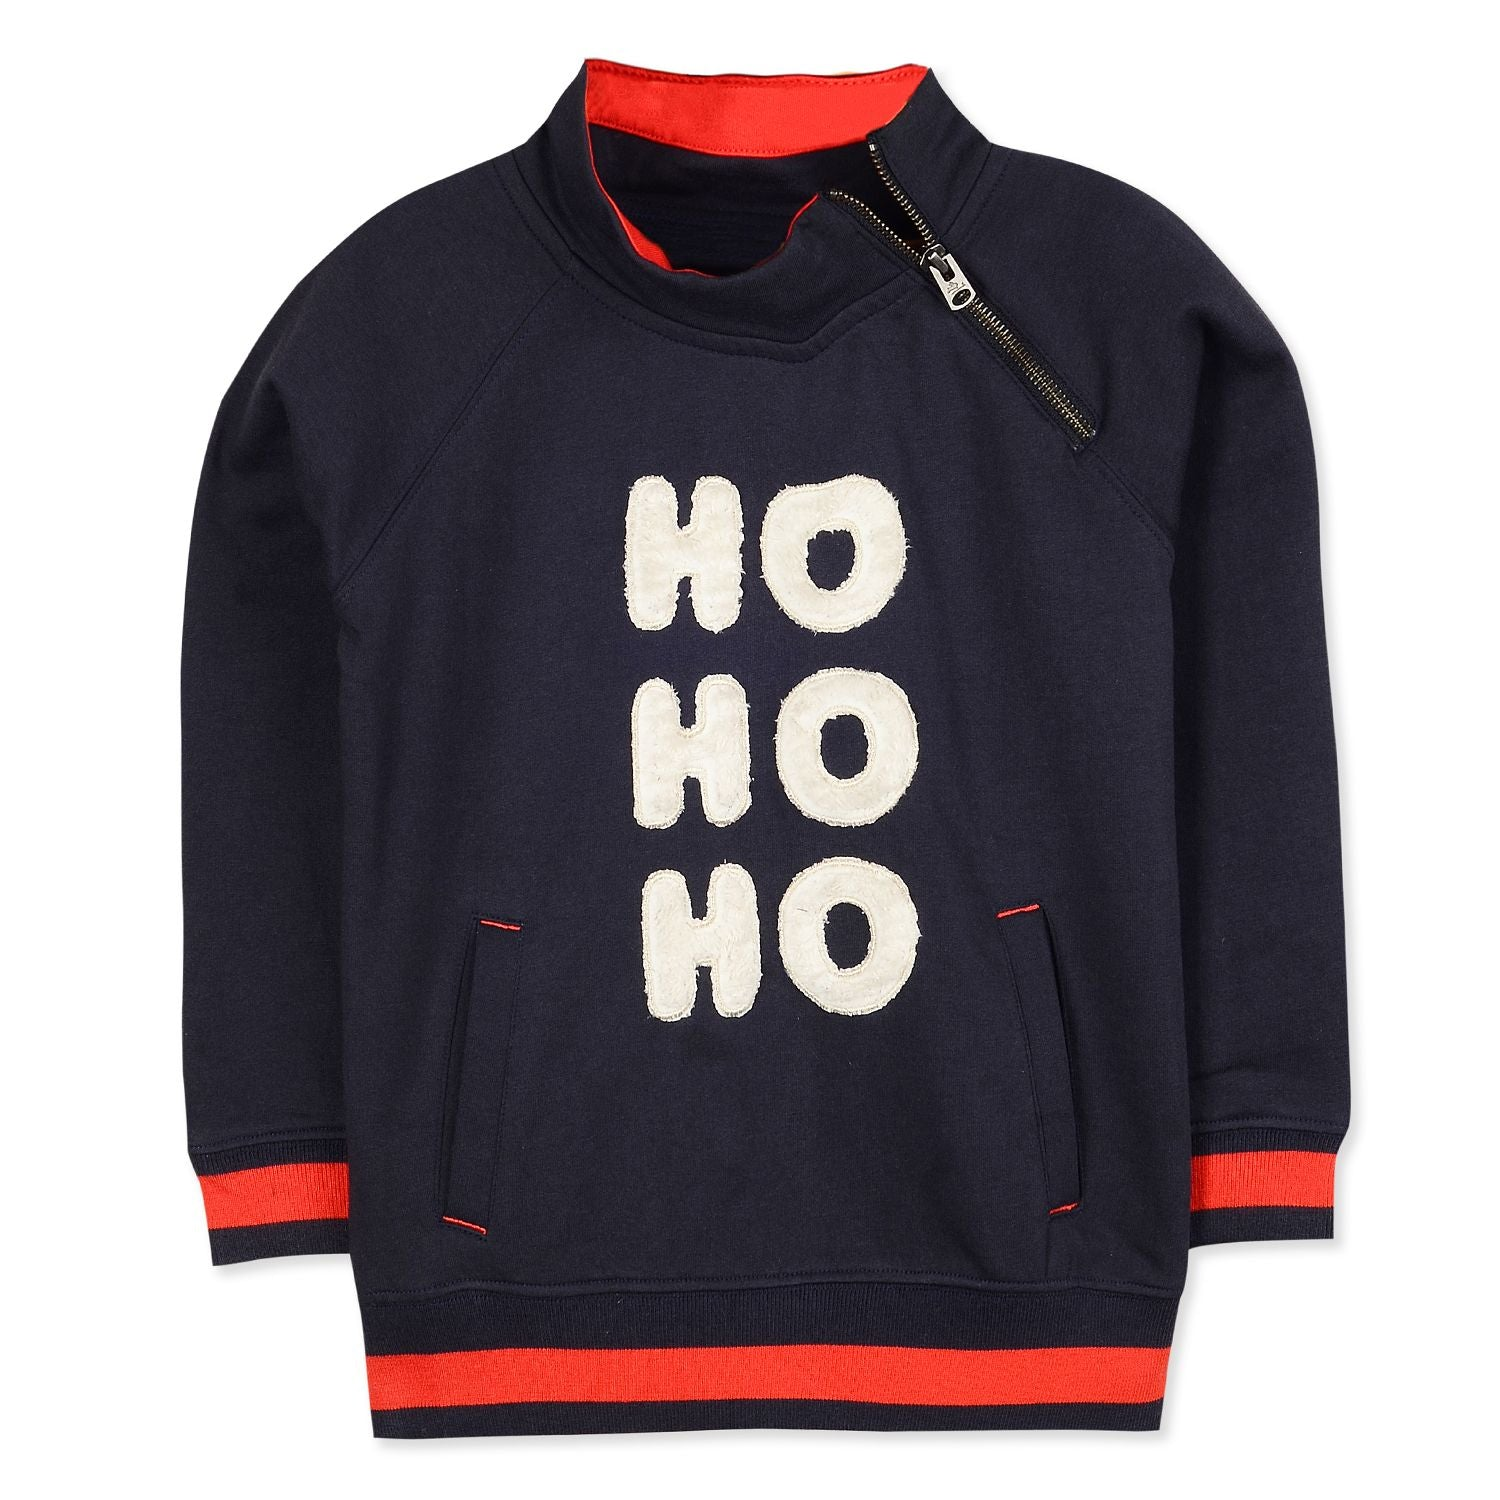 Daring sweatshirt for Boys